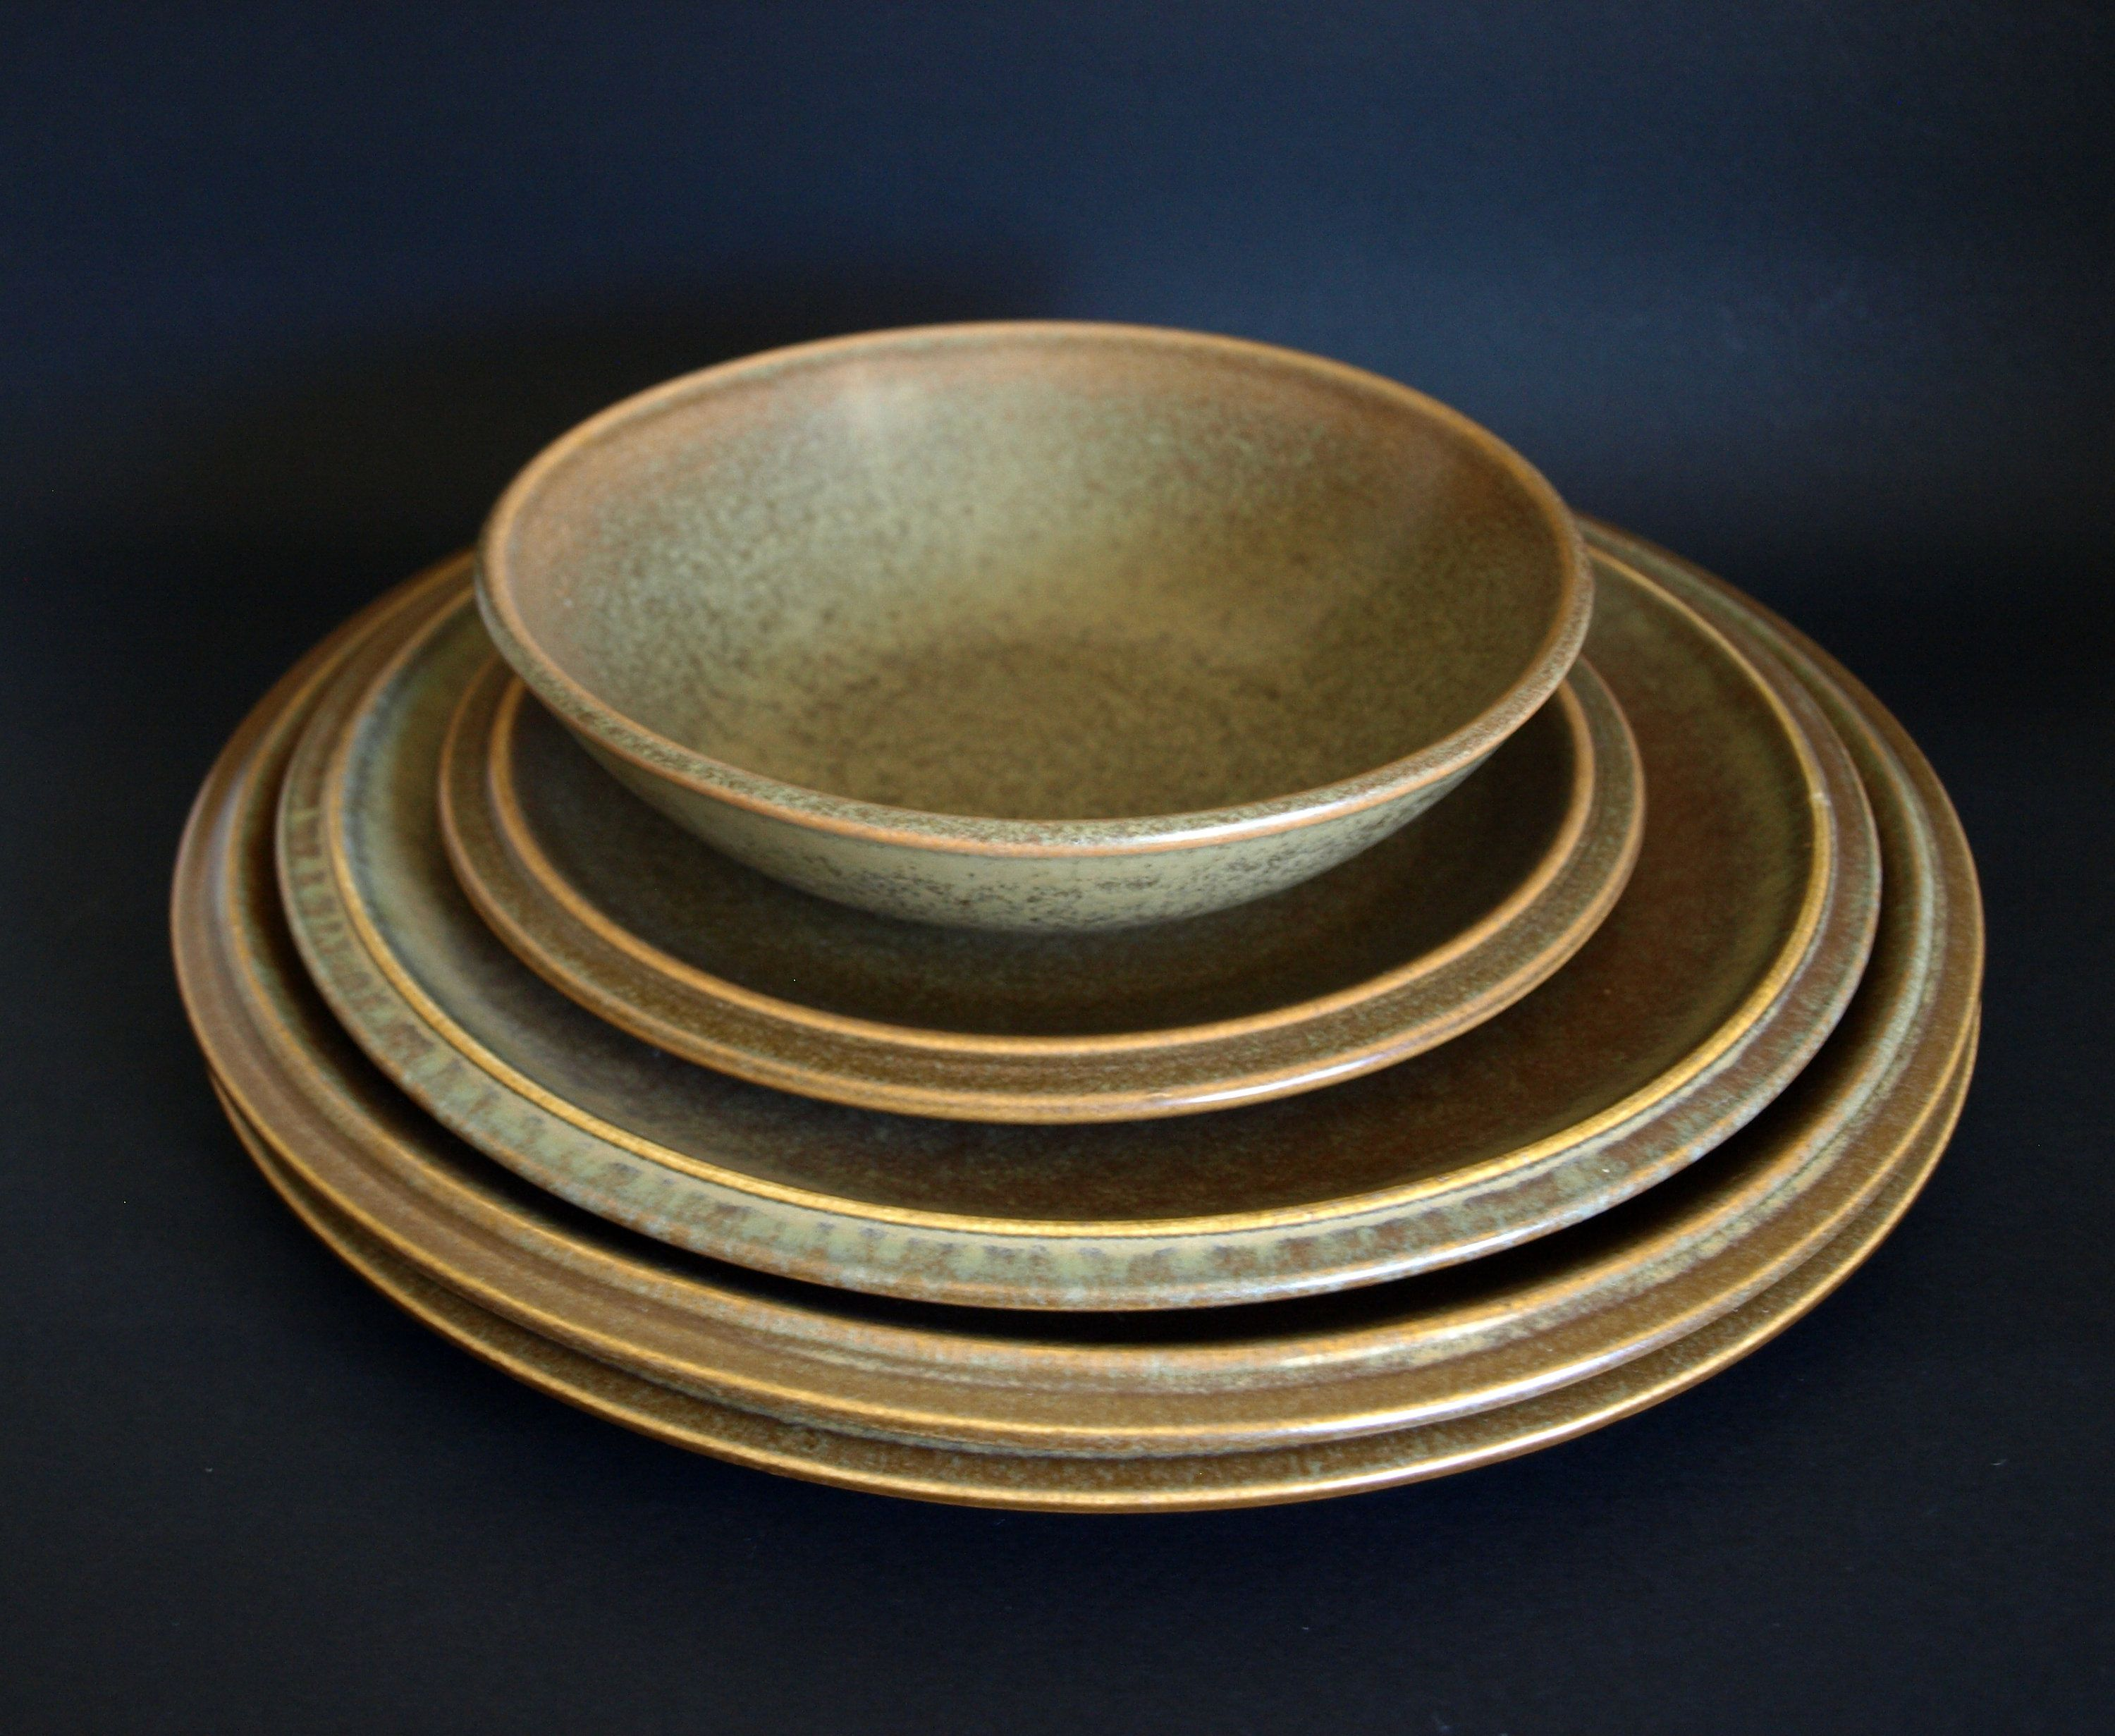 Temuka Pottery Riverstone Dinnerware Lot Of 5 Pieces Vintage Etsy Dinnerware Pottery Plates